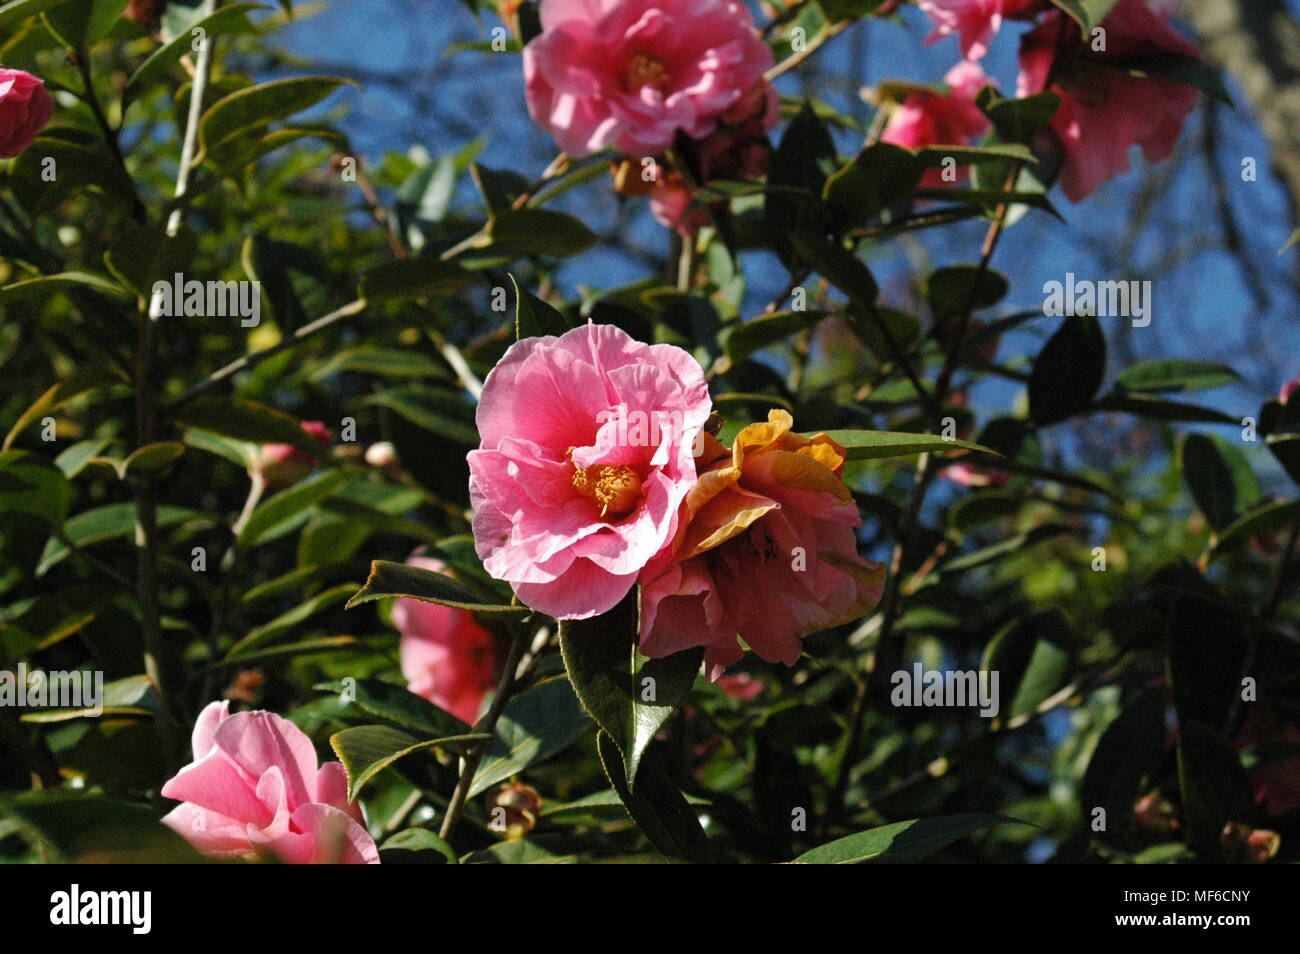 Lovely Pink Flowers Stock Photo 181465255 Alamy